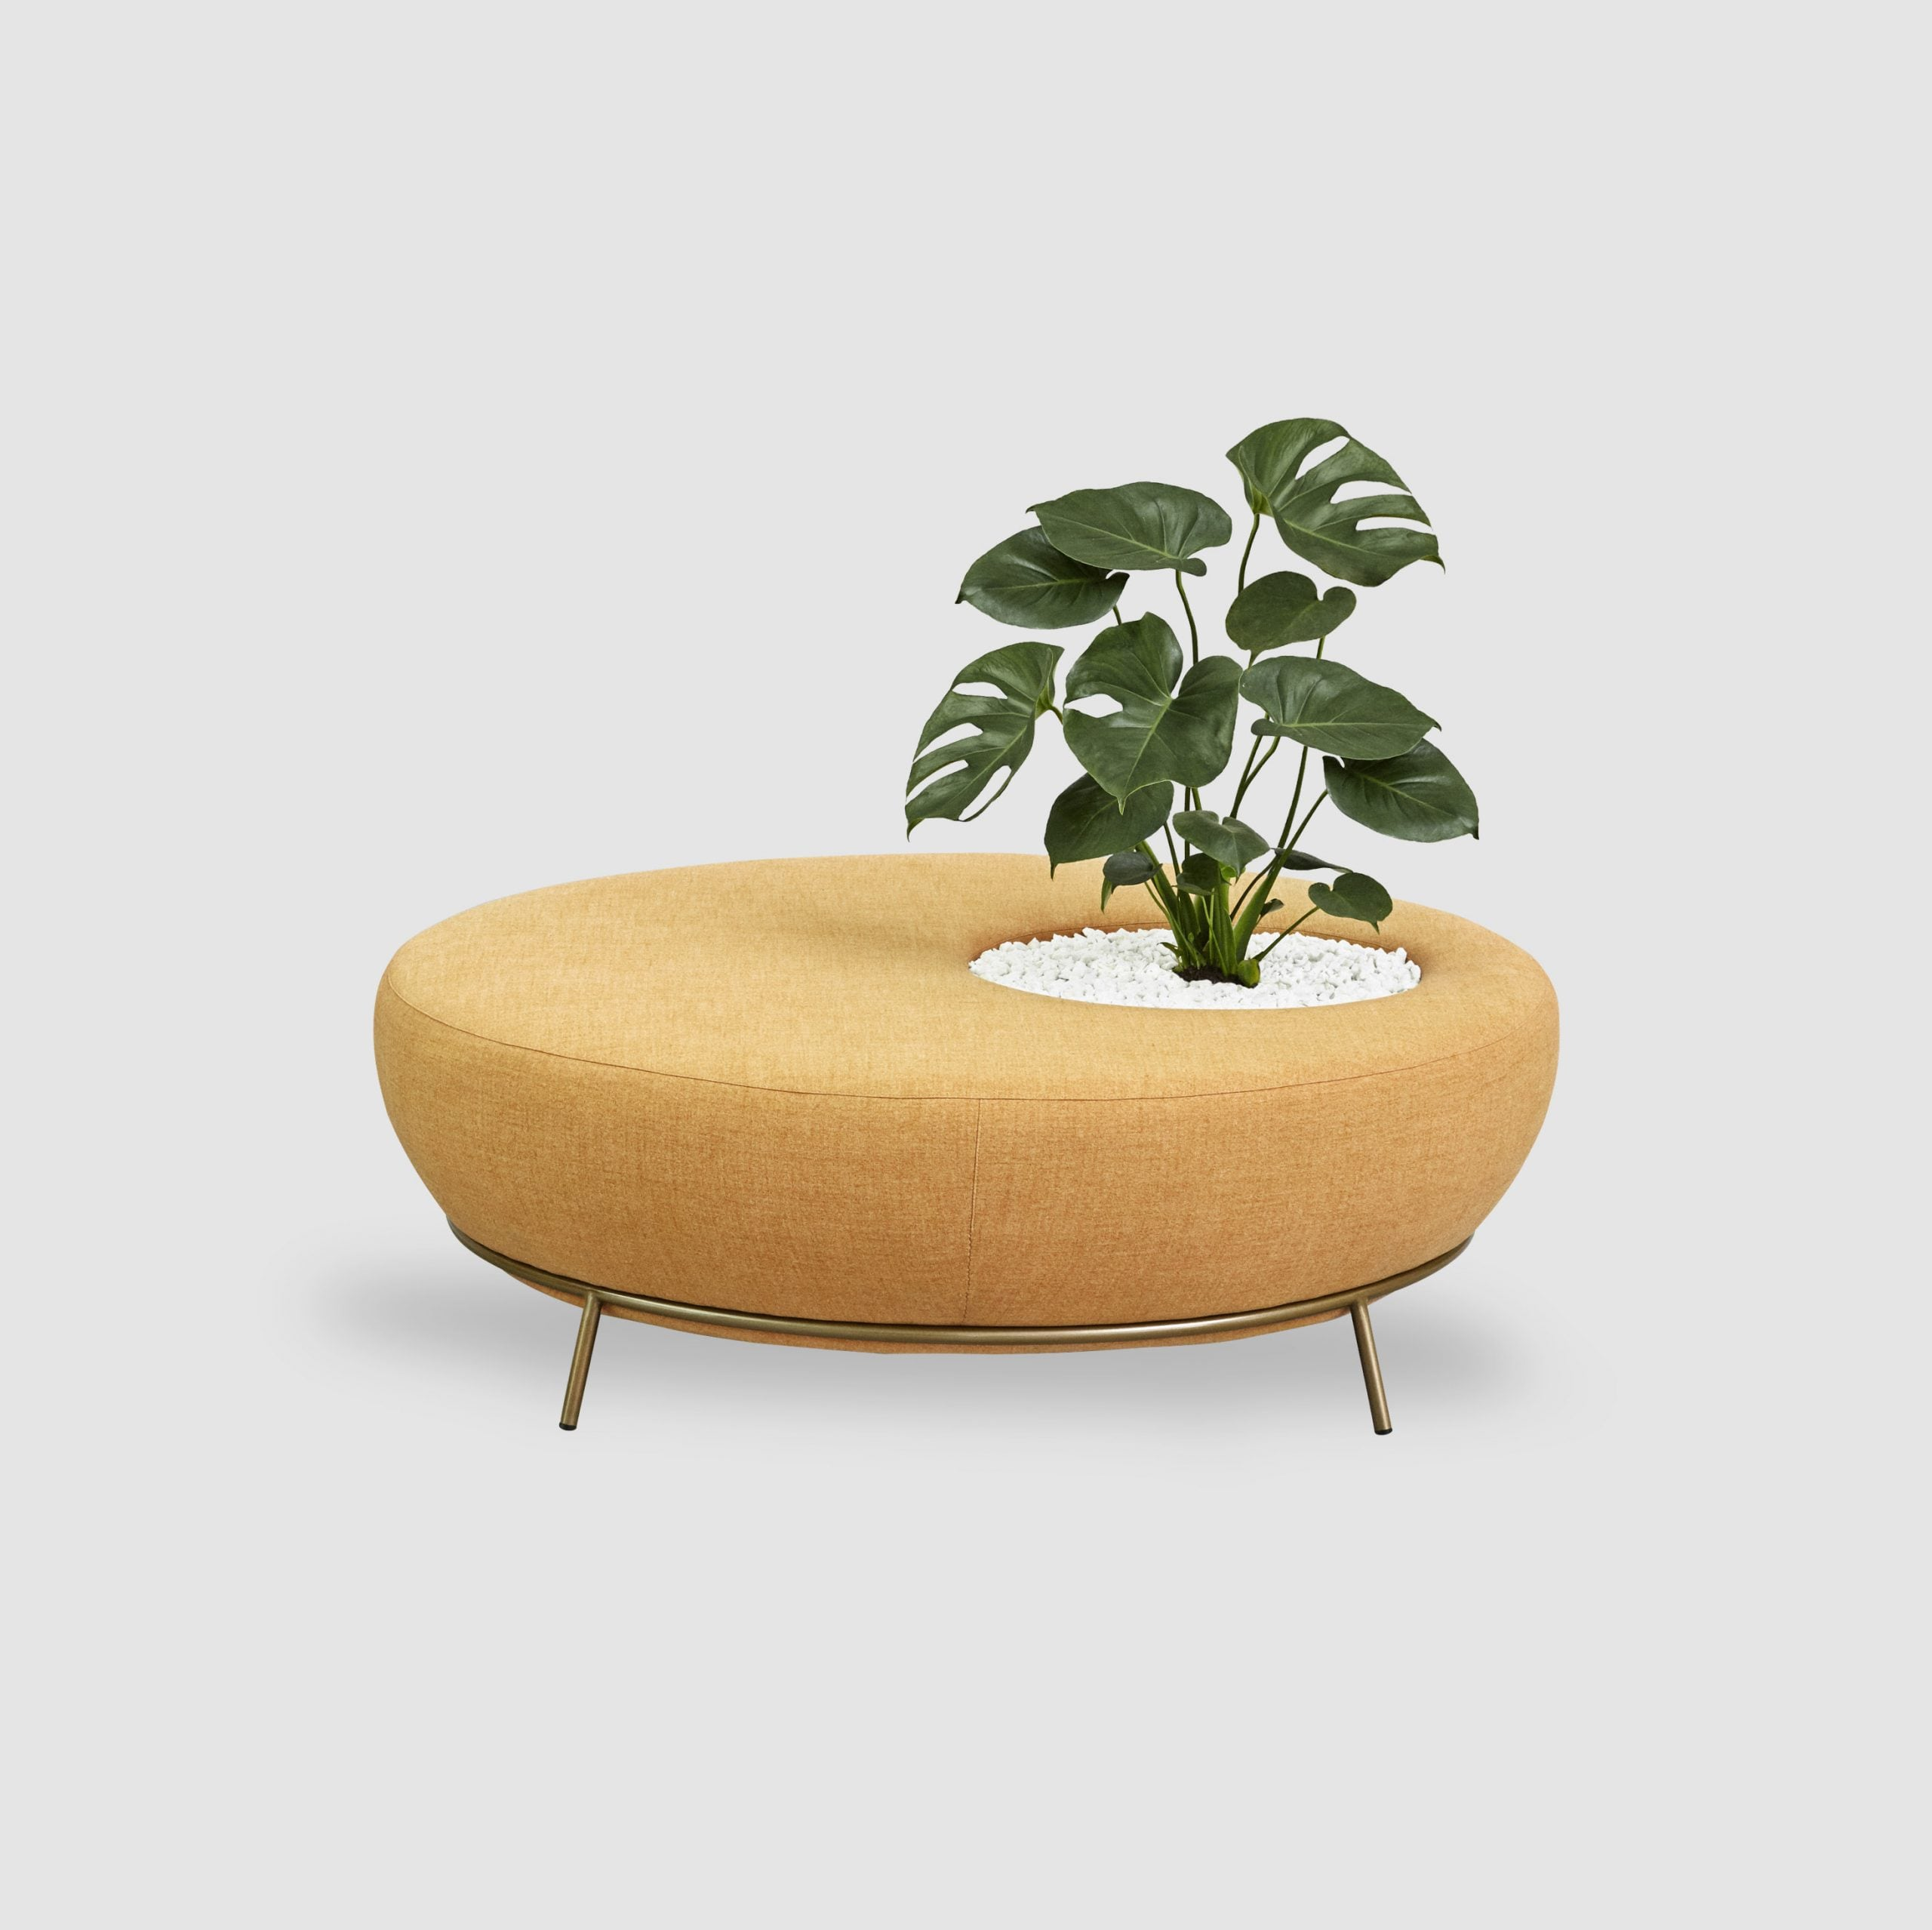 nest-sofa-pot-hospitality-interior-projects-furniture-contract